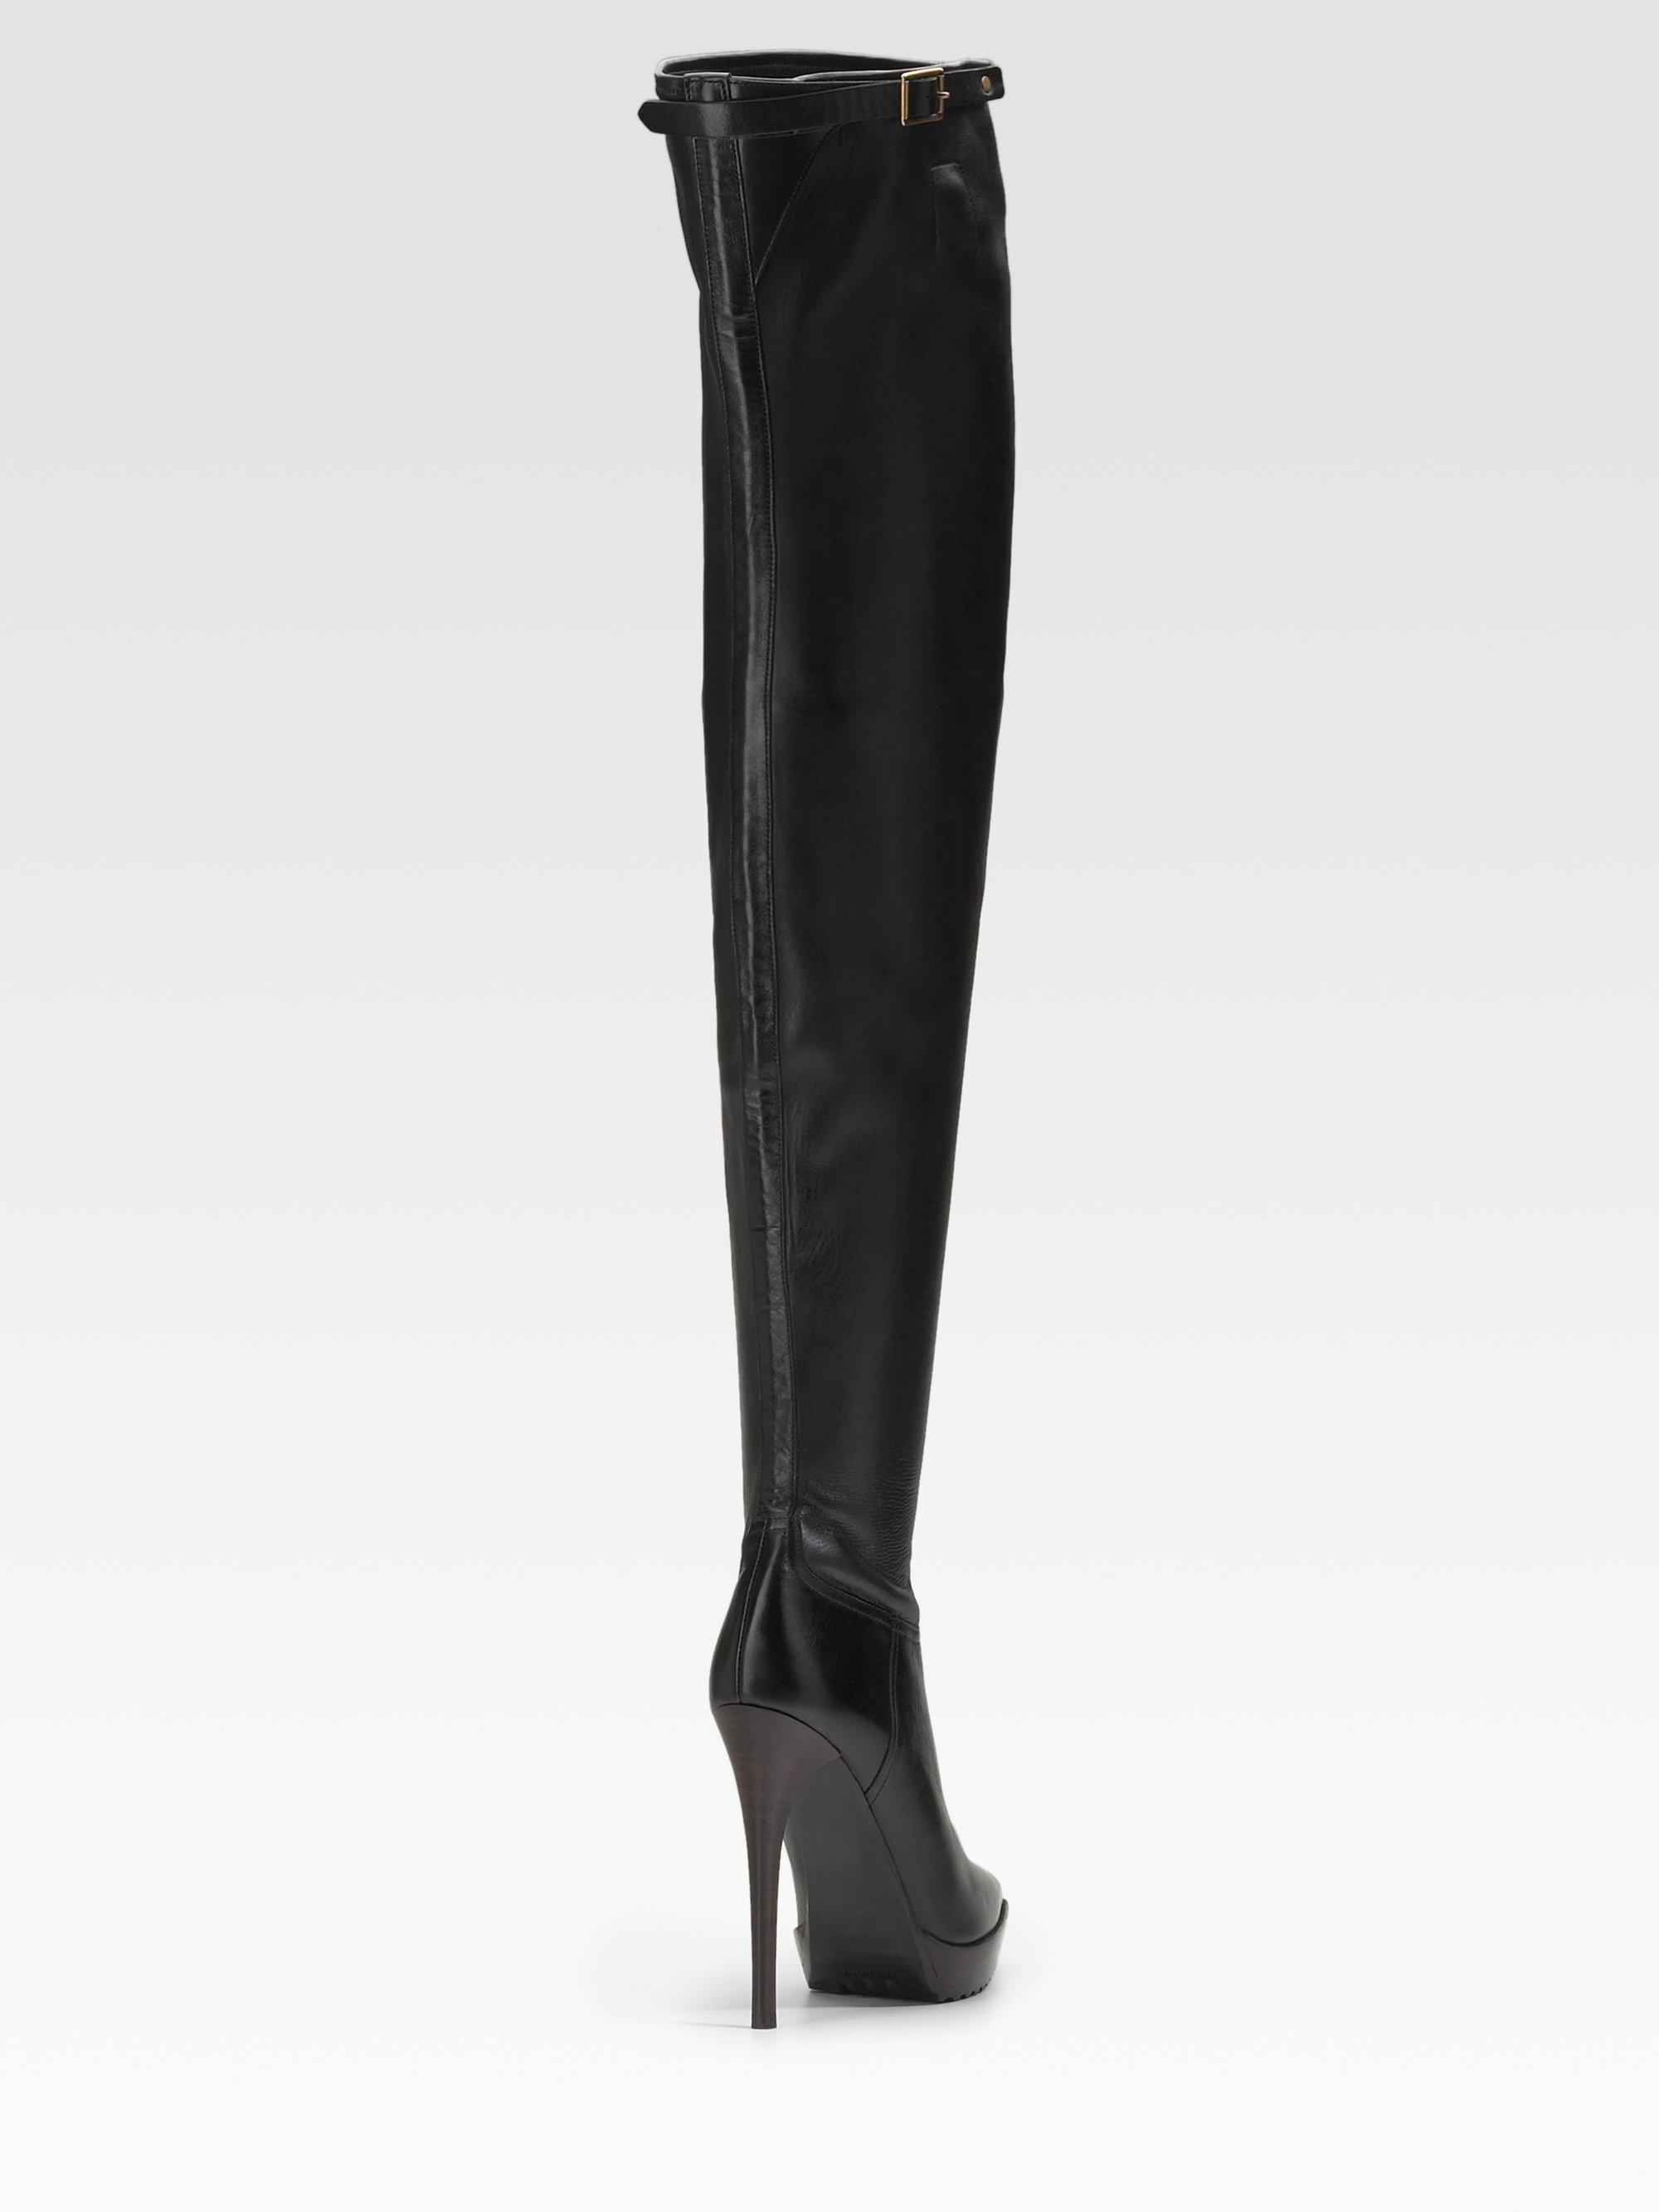 Burberry prorsum Pointy Toe Thigh-high Boots in Black | Lyst